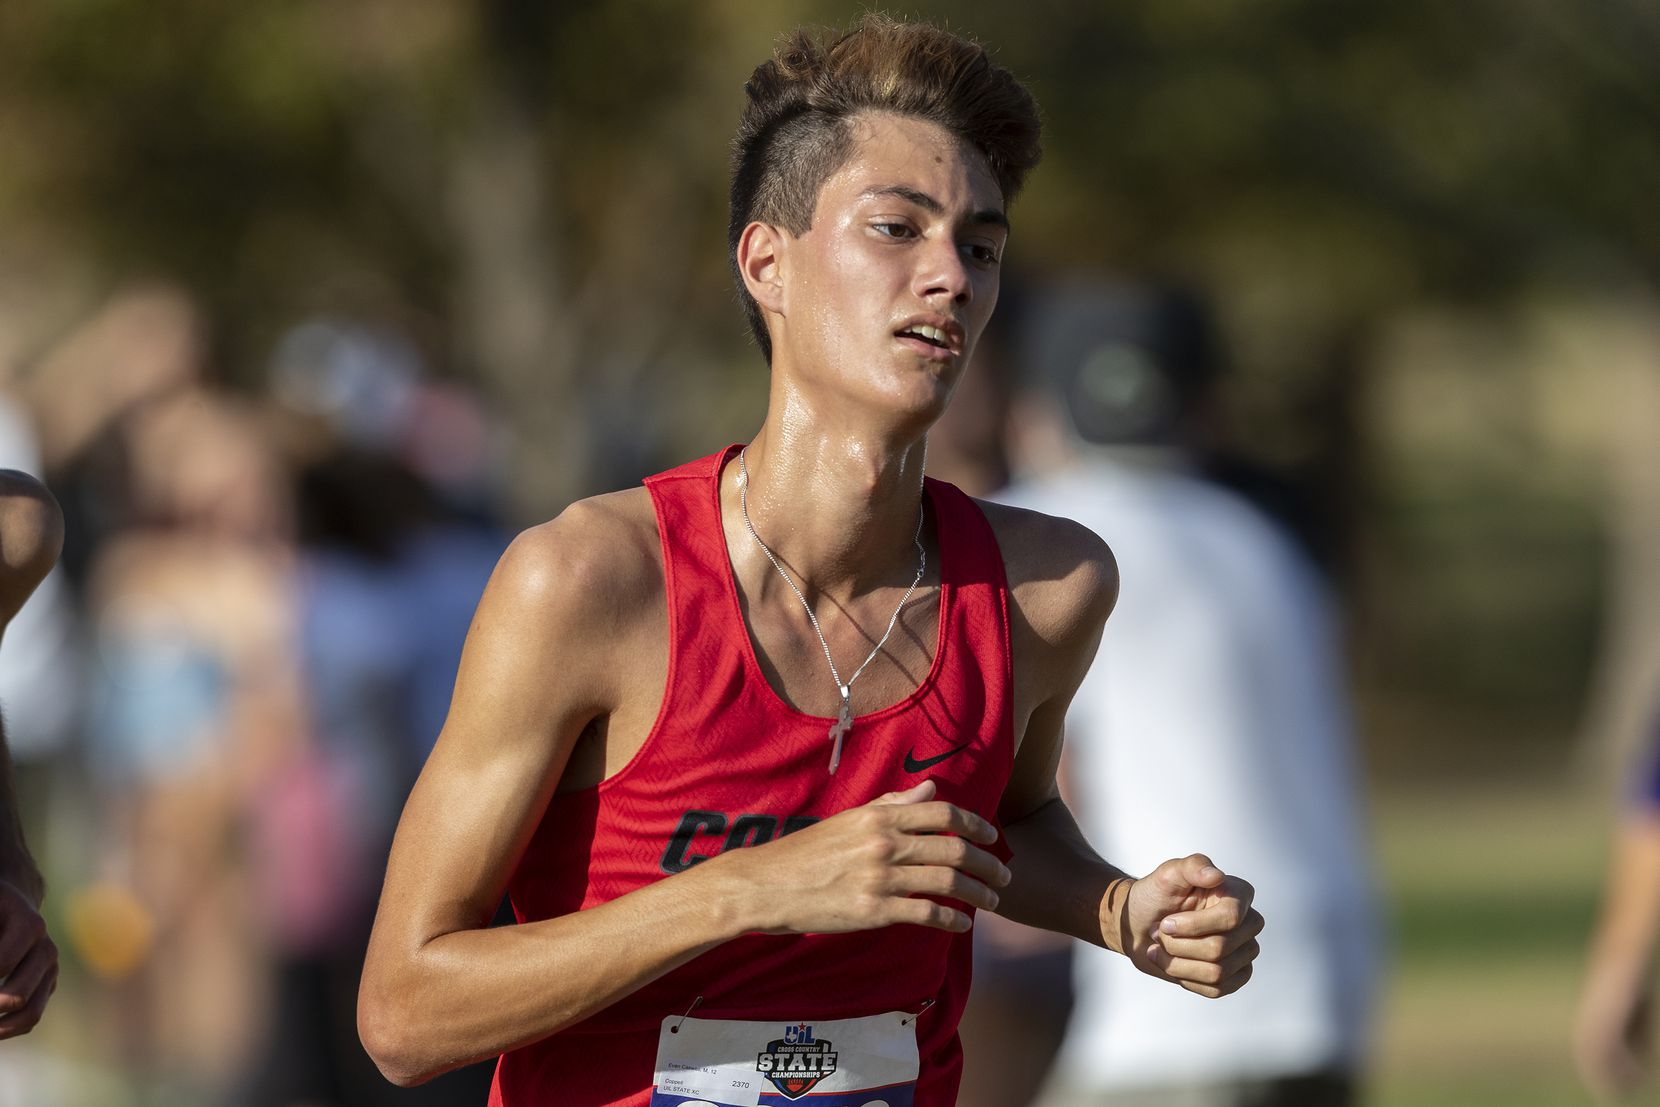 Coppell's Evan Caswell (2370) finishes eighth in the boys UIL Class 6A state cross country meet in Round Rock, Tuesday, Nov., 24, 2020. (Stephen Spillman/Special Contributor)